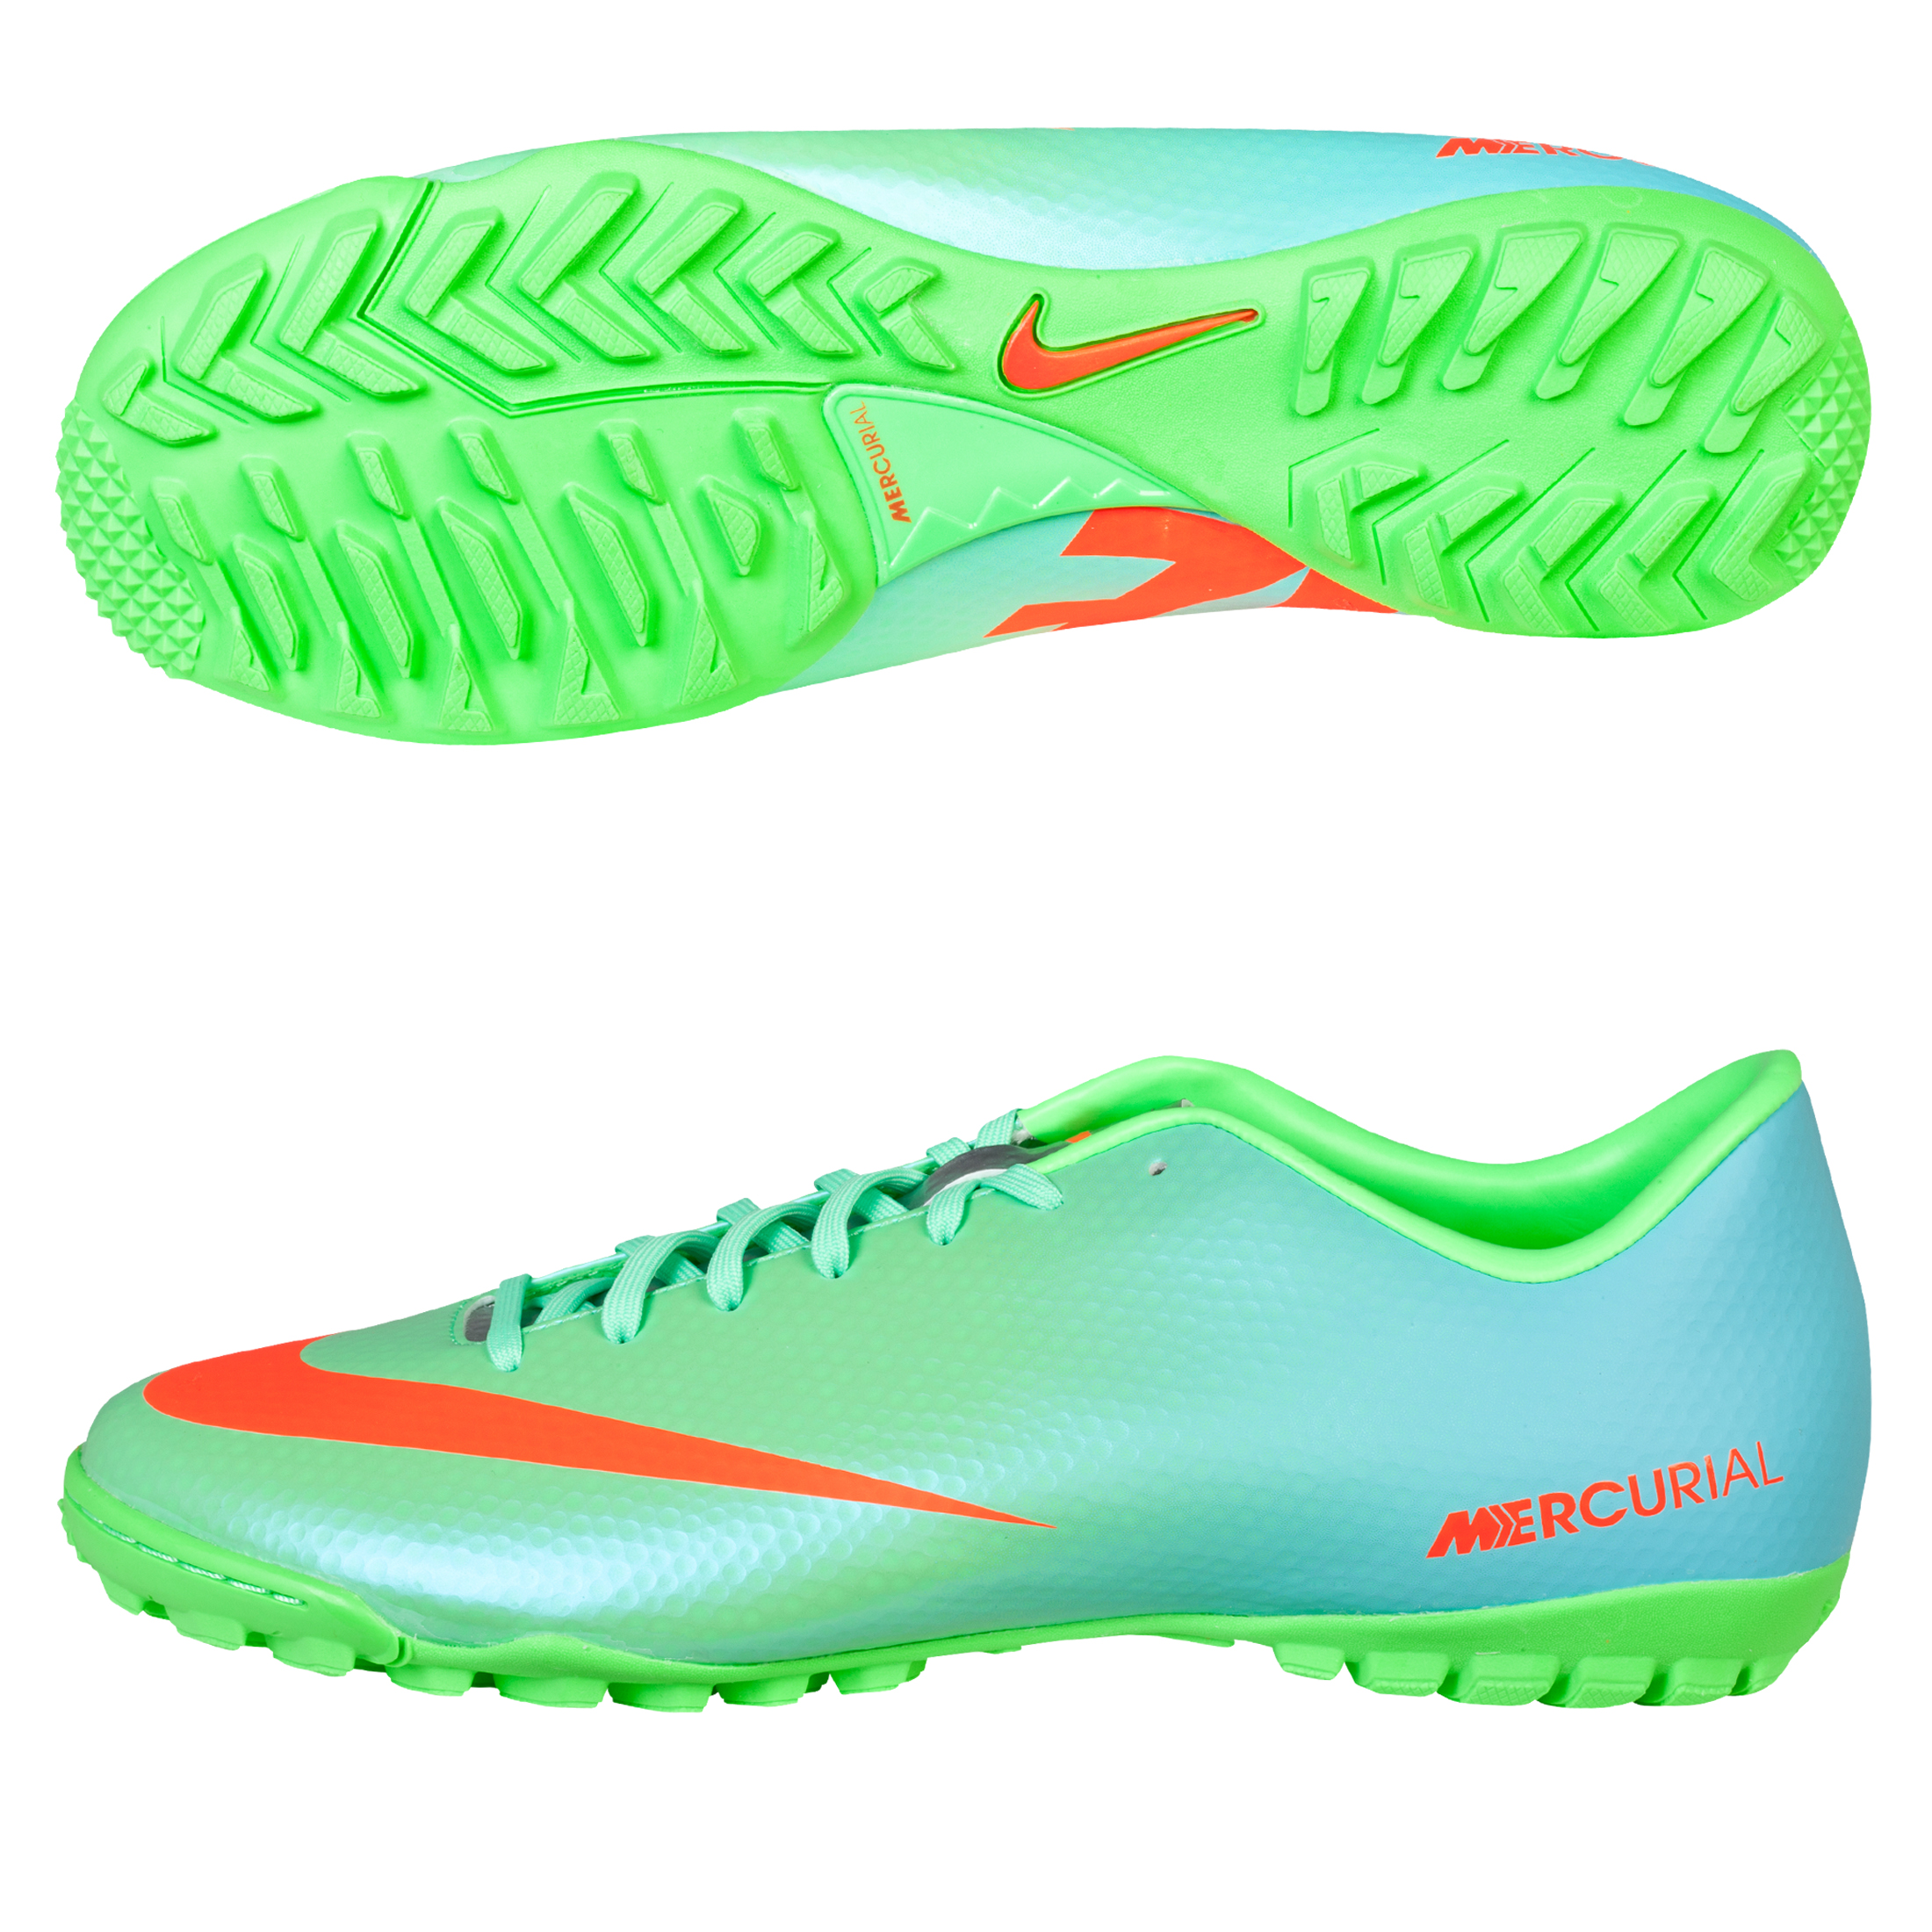 Nike Mercurial Victory IV Astroturf Trainers Green